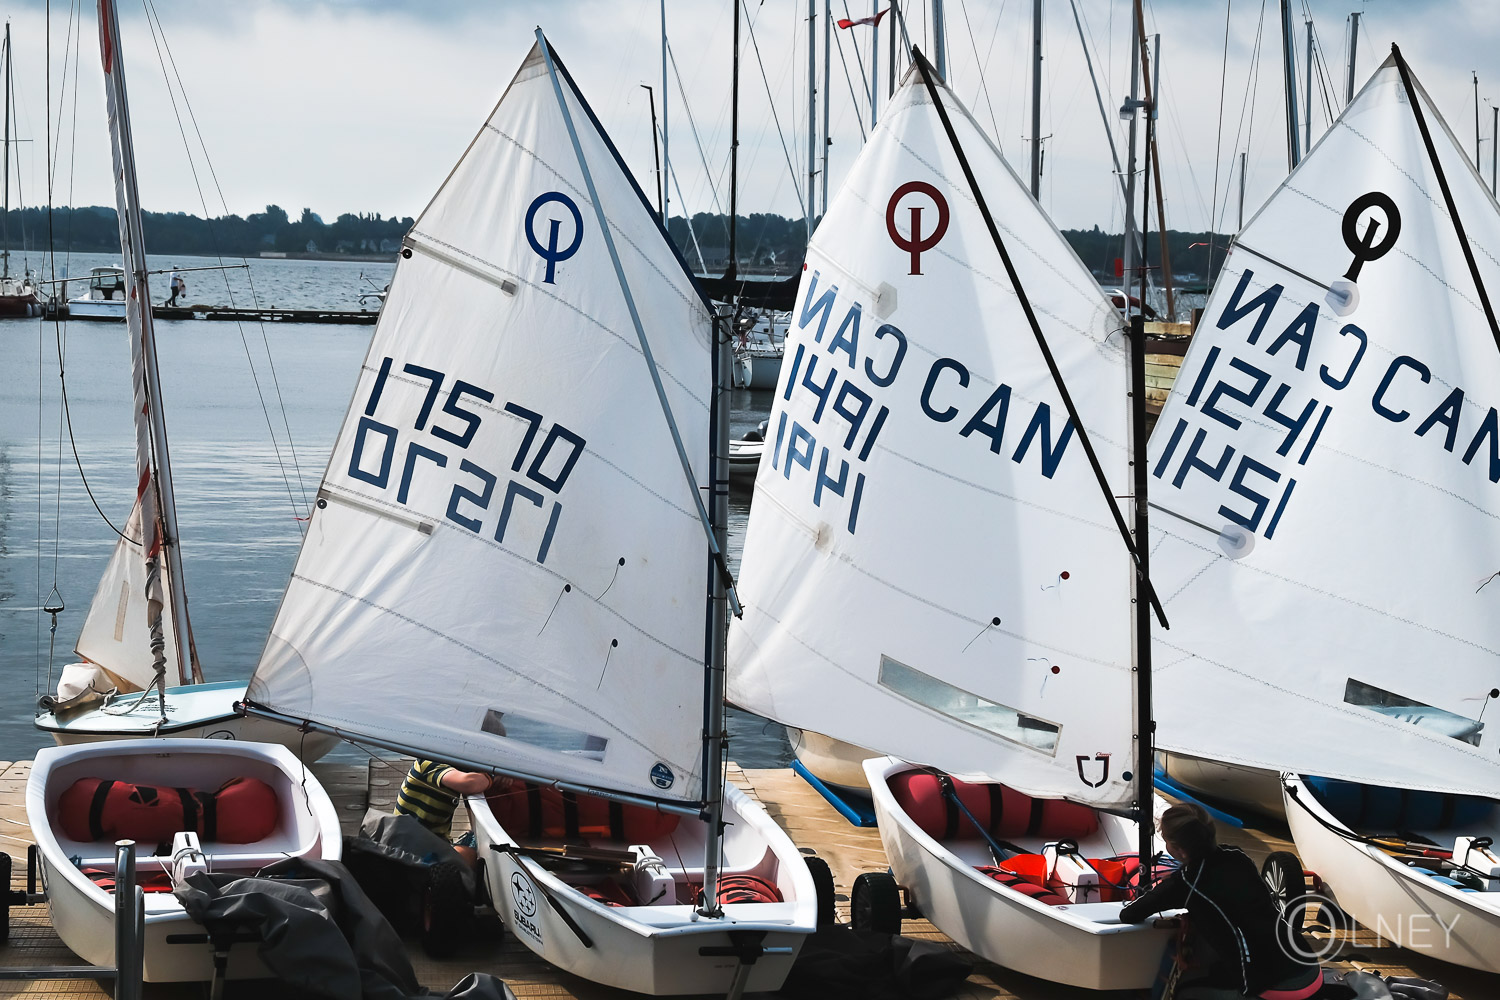 Preparing for a race in Charlottetown Prince Edward Island